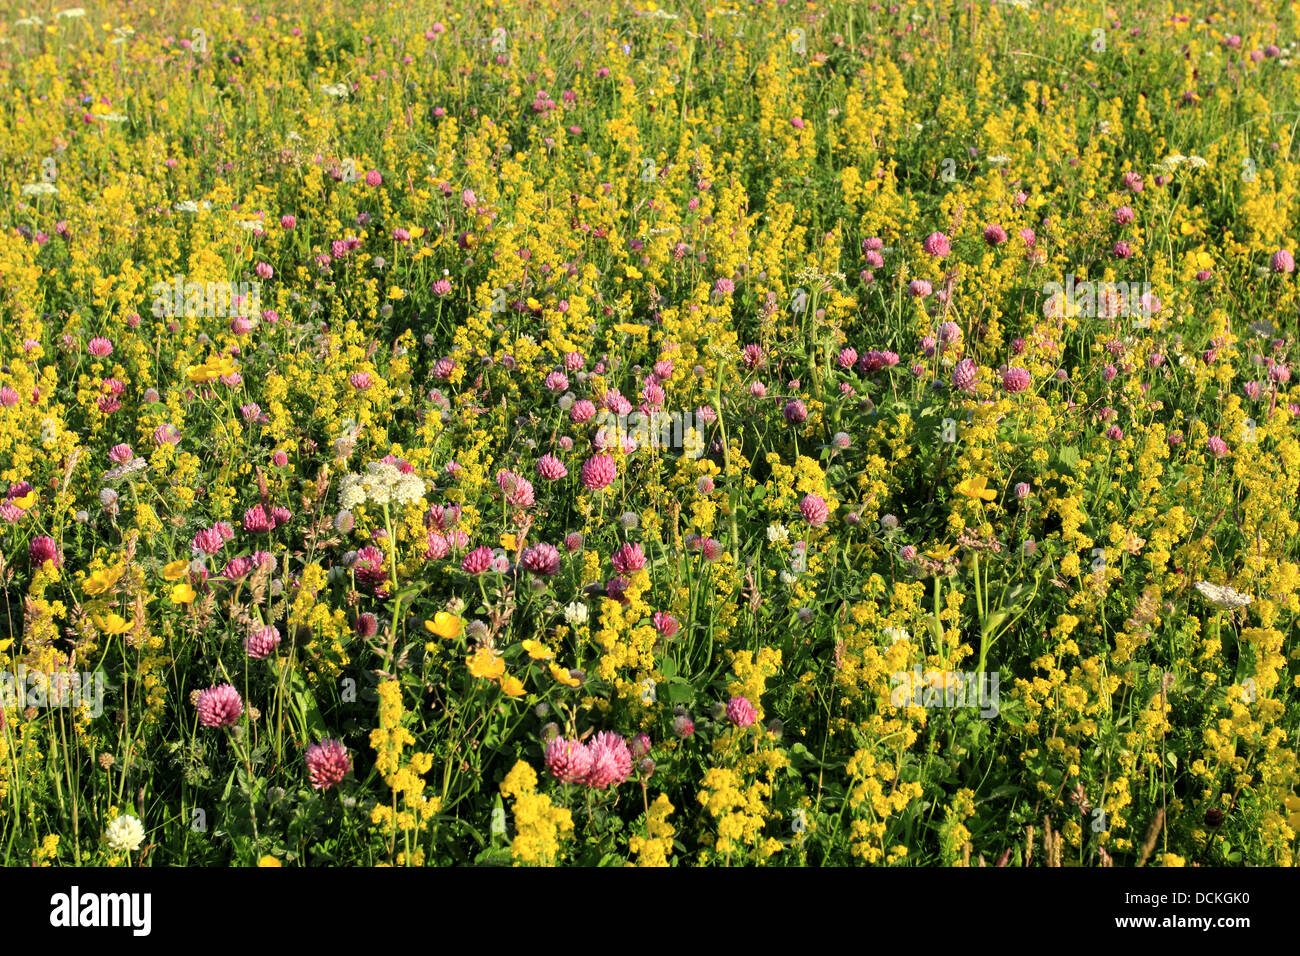 British Wild Flowers Red Clover And Lady 39 S Bedstraw Stock